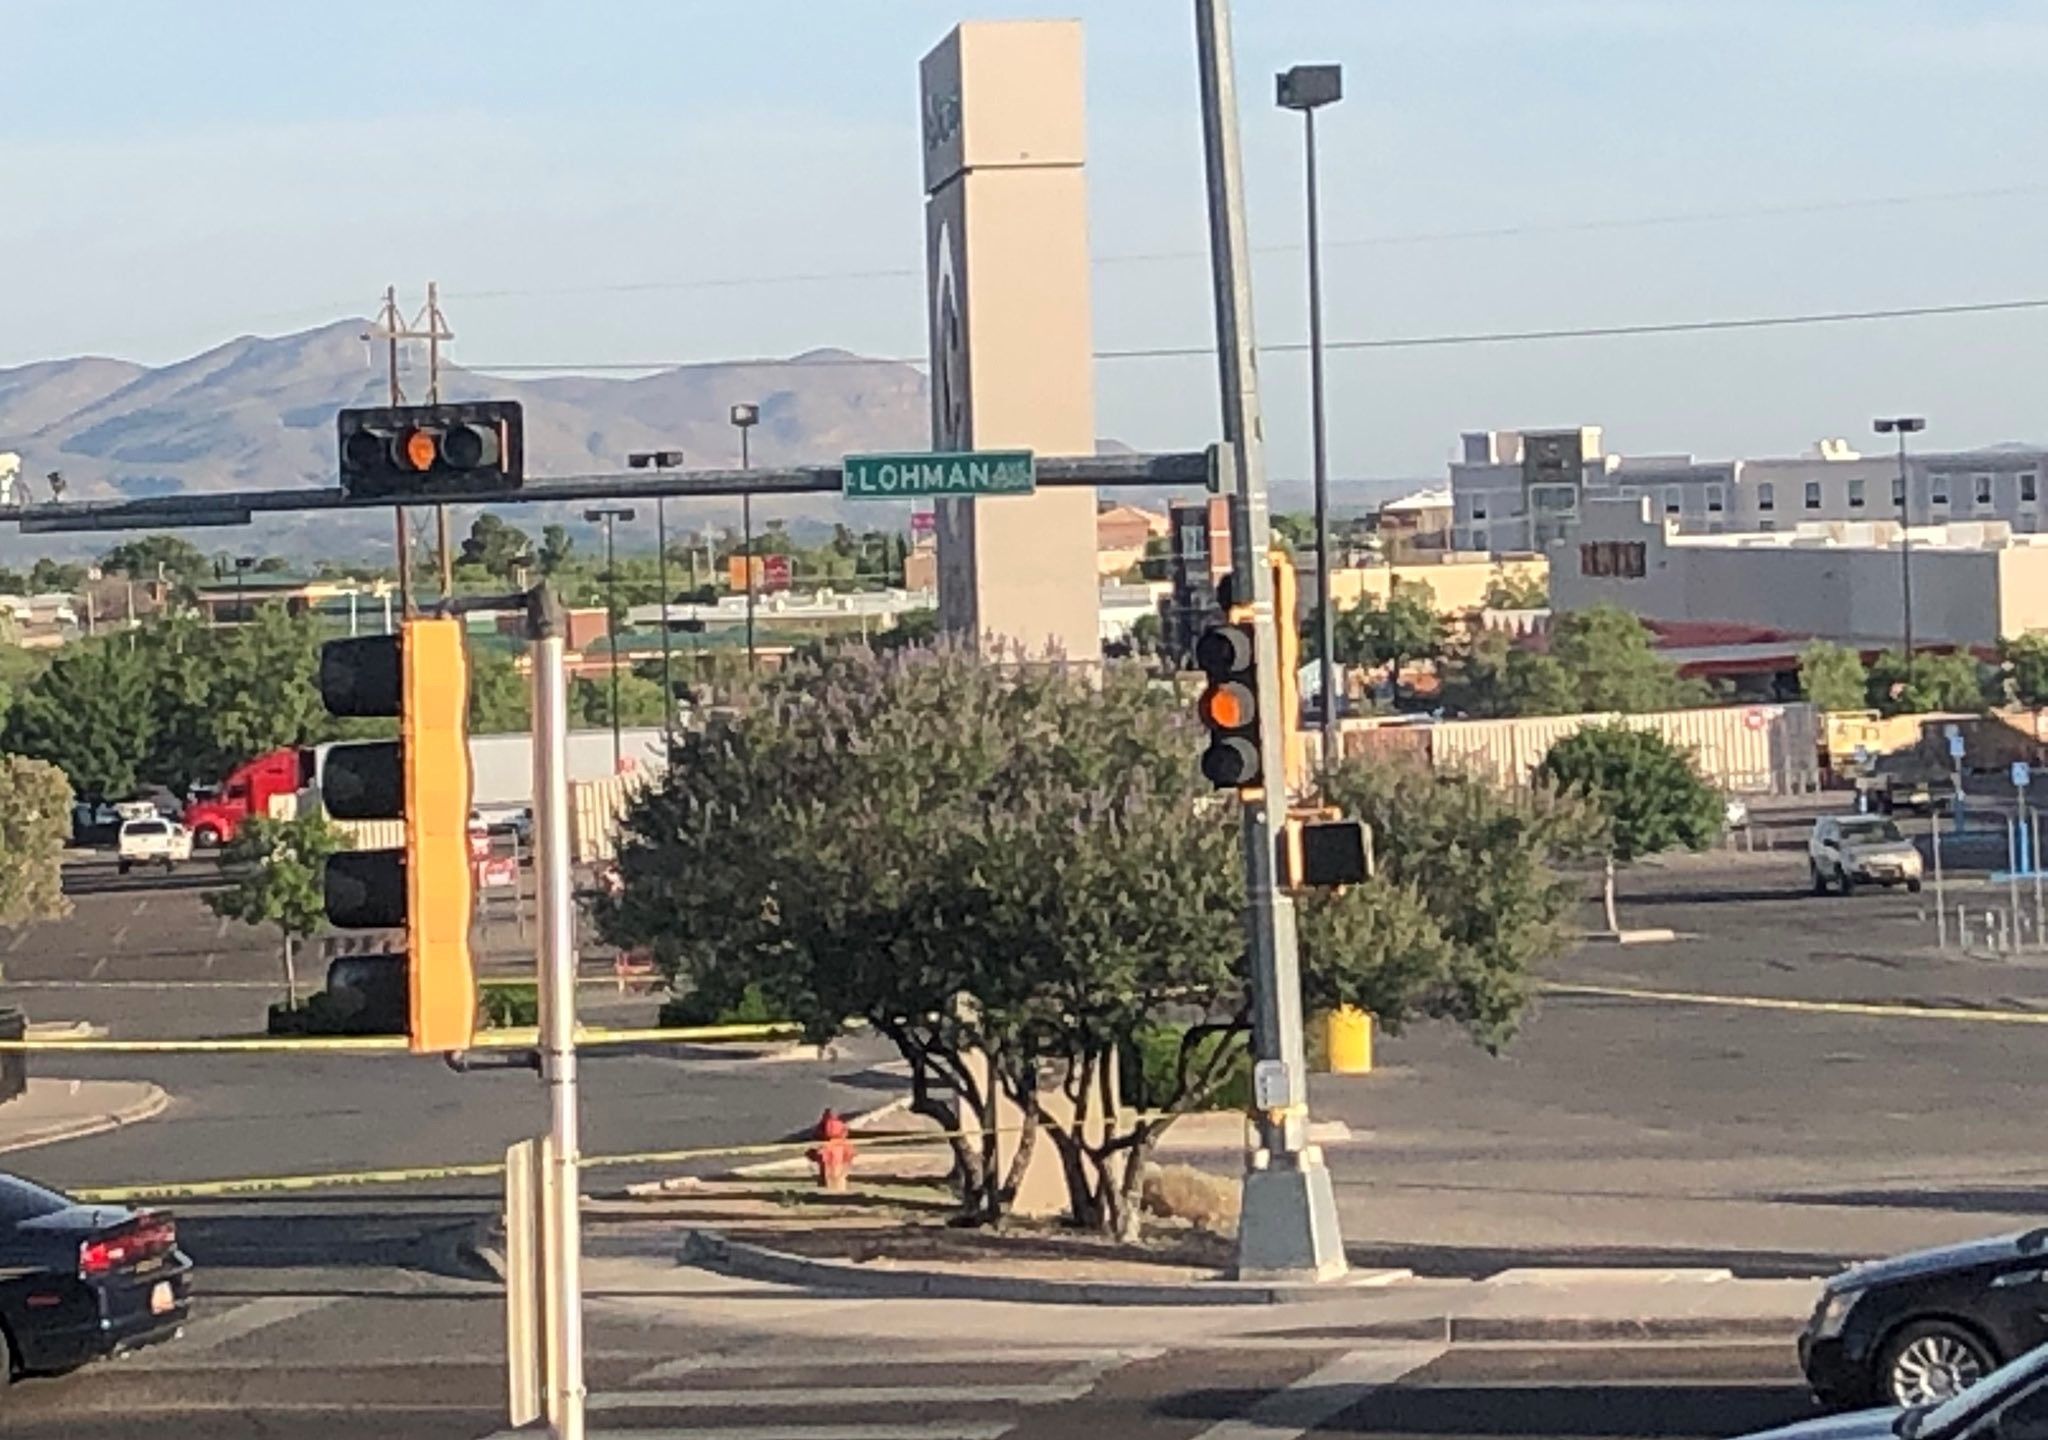 Scene of the Las Cruces shooting